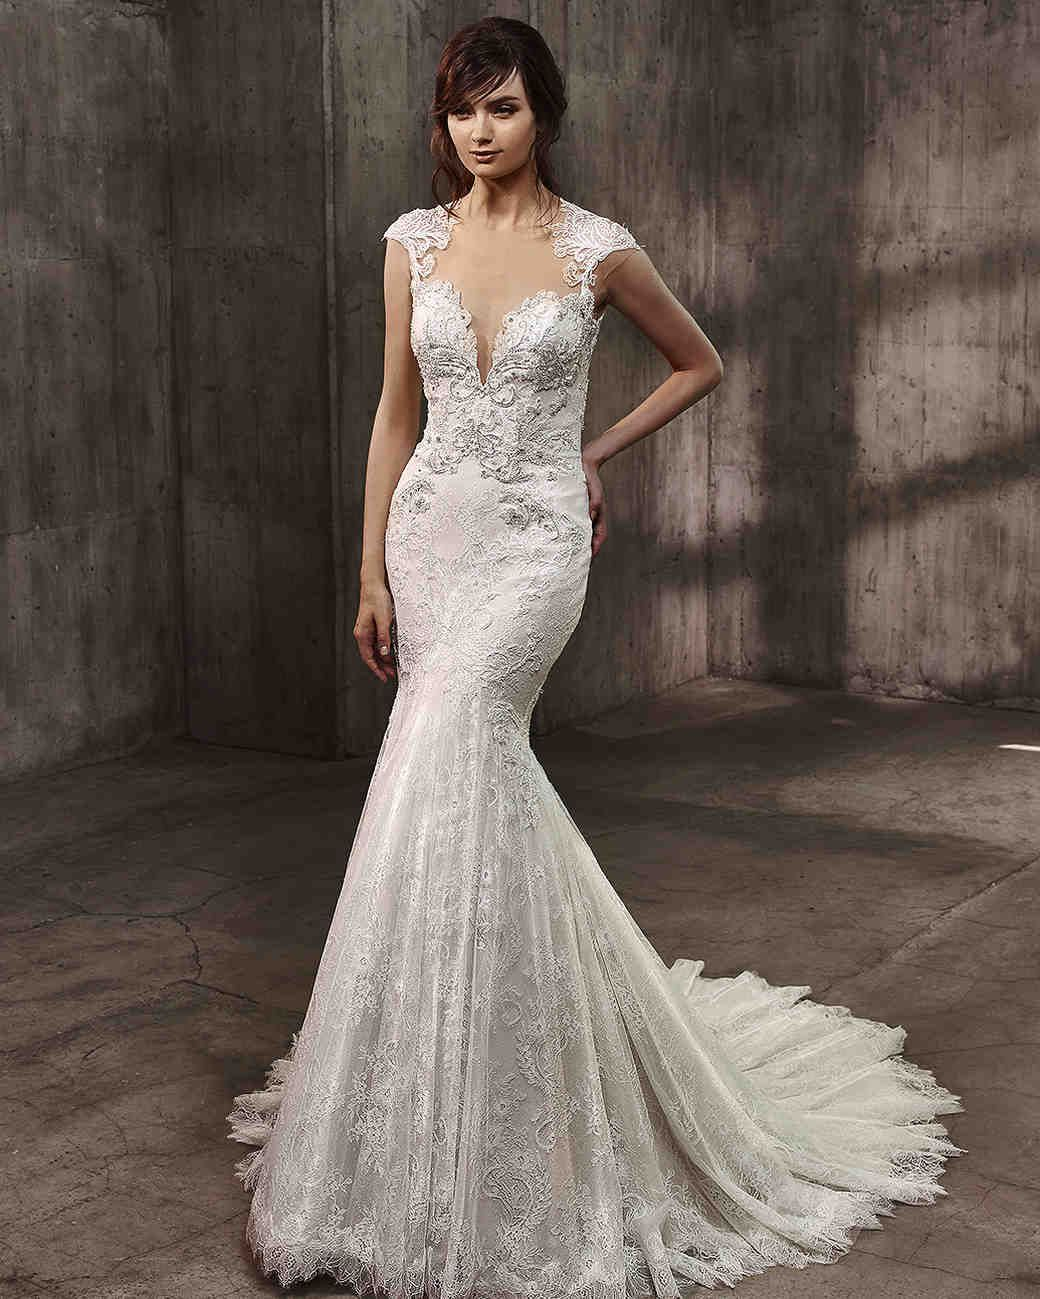 Badgley Mischka Fall 2017 Wedding Dress Collection